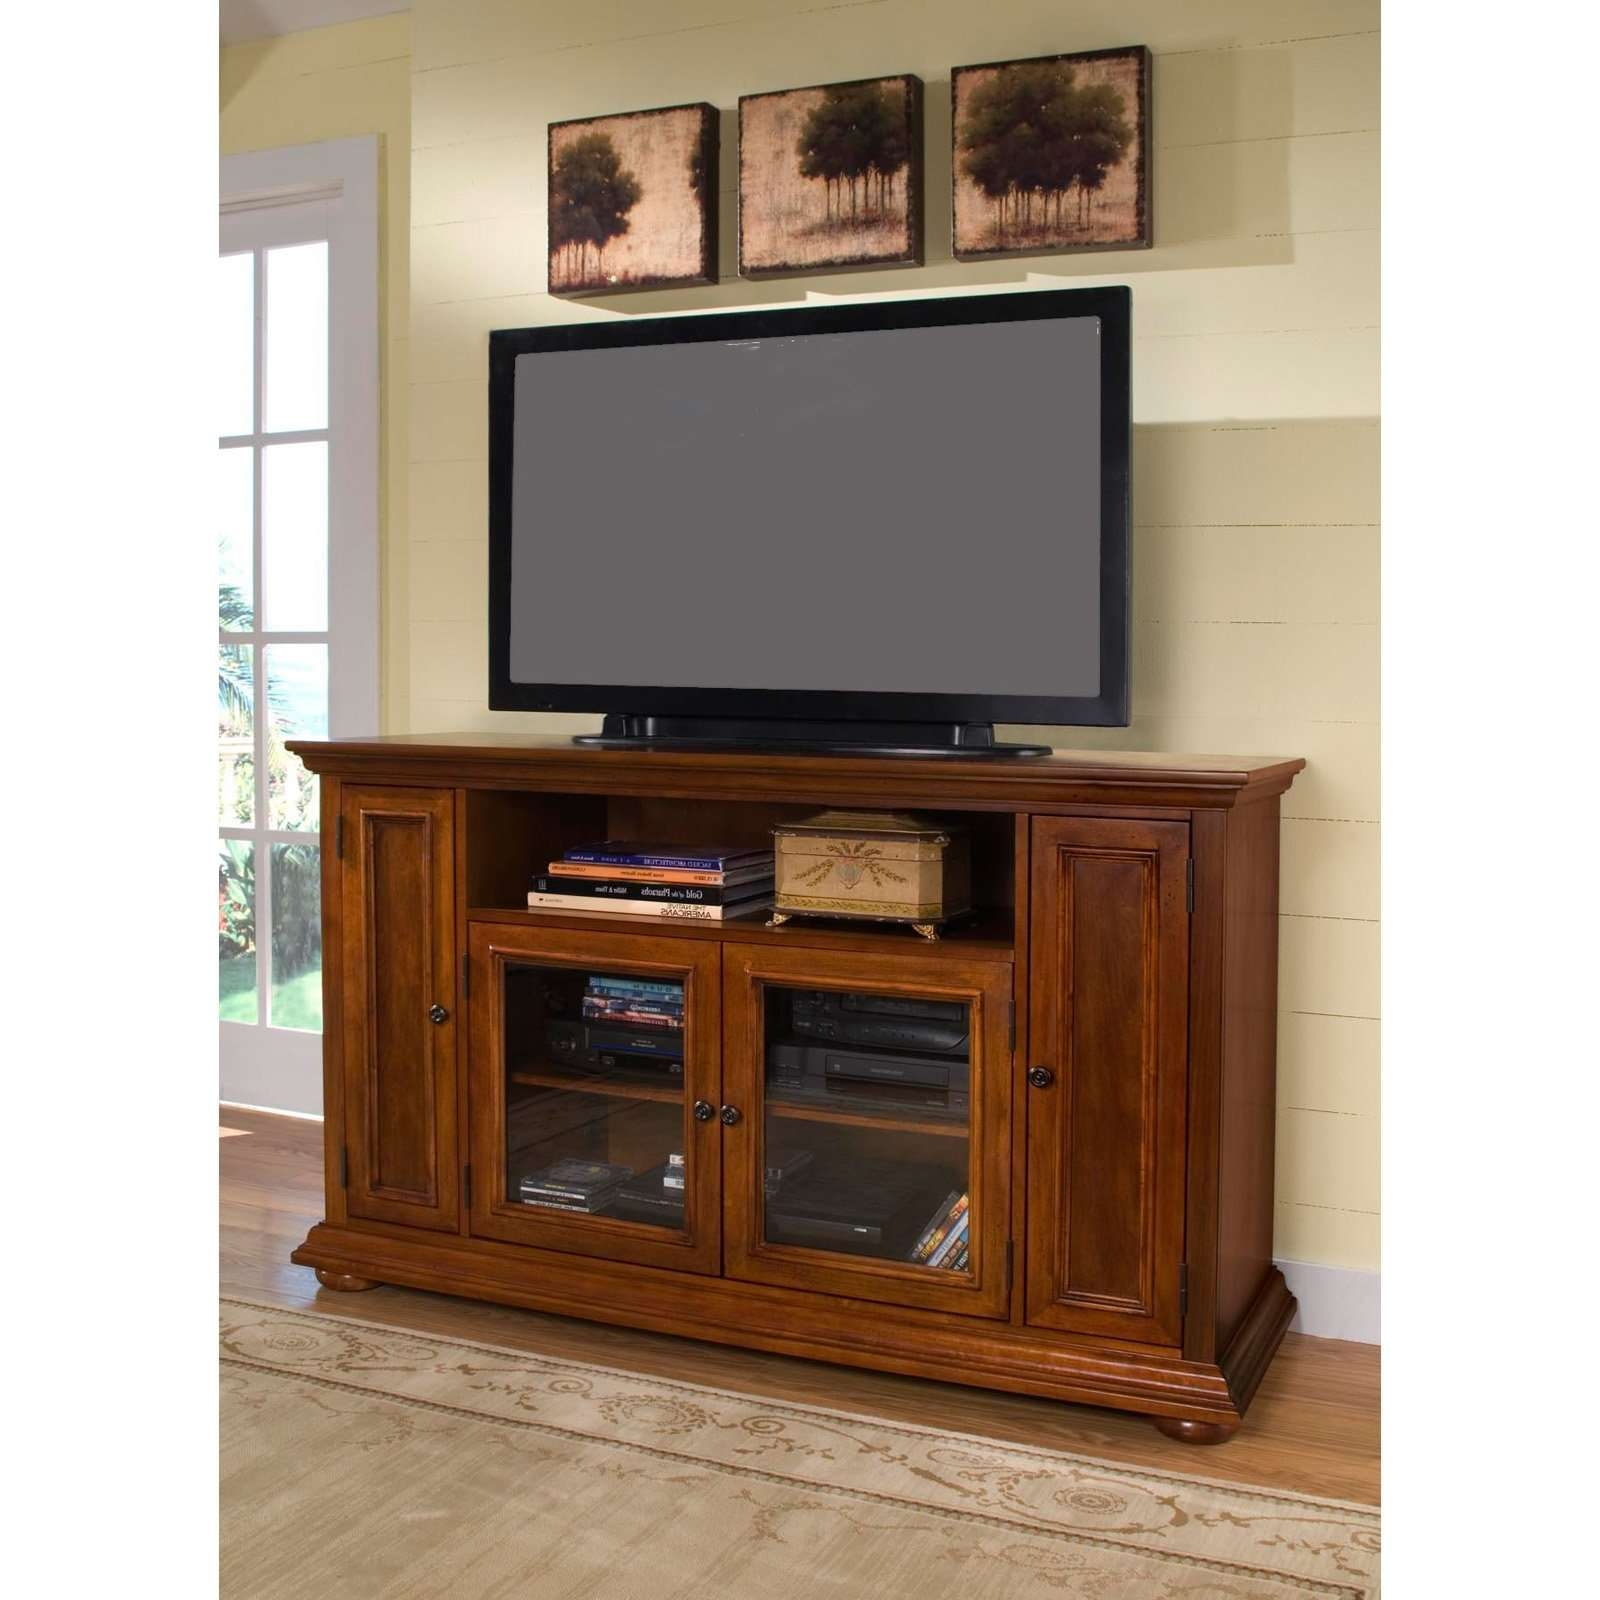 Rectangle Black Flat Screen Tv Over Brown Wooden Cabinet With Inside Glass Tv Cabinets With Doors (View 13 of 20)